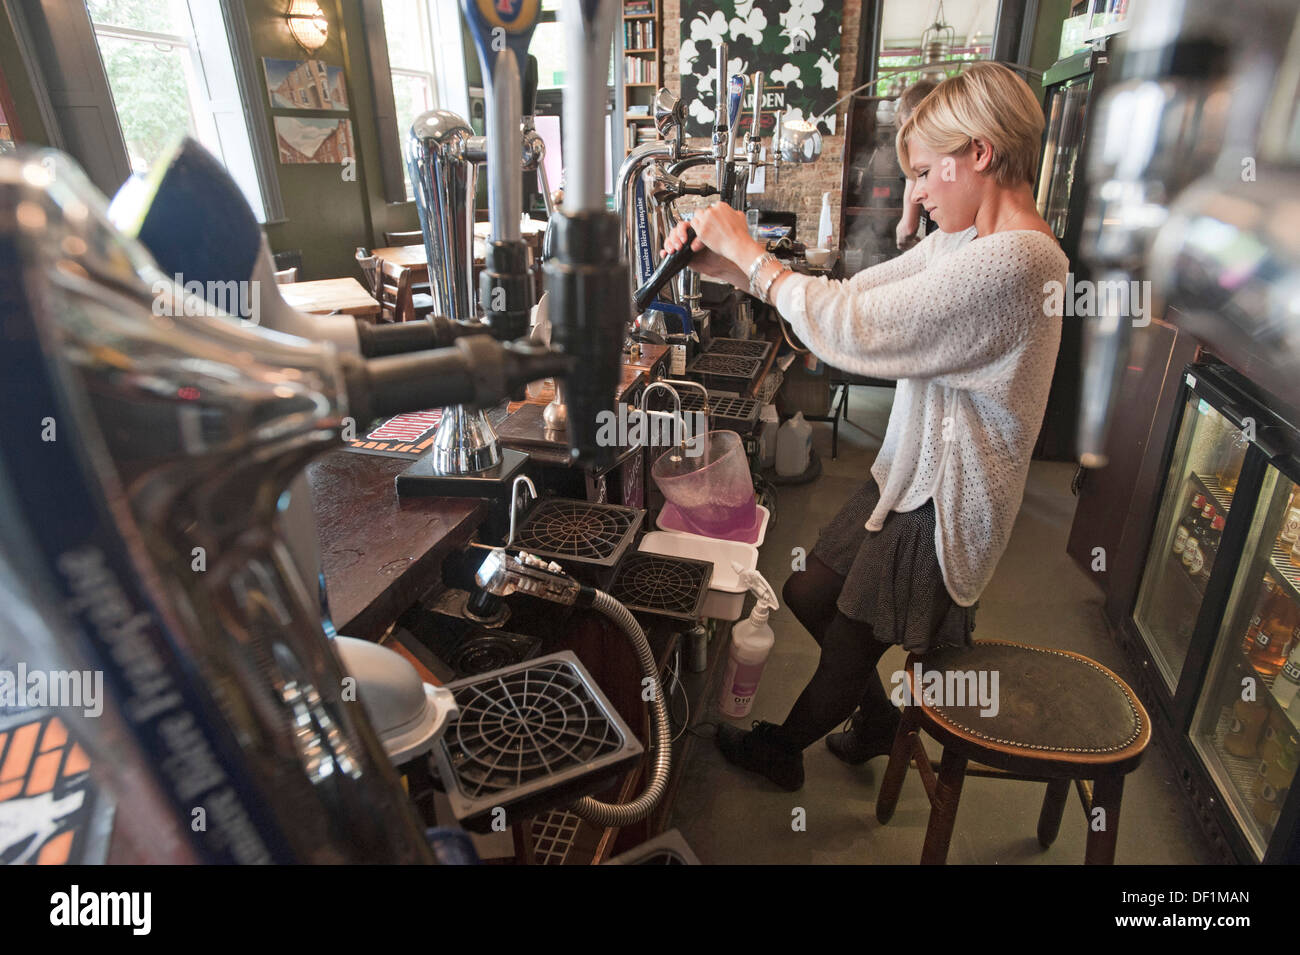 Kamin Glasplatte Versenken Beer Pumps English Pub Stockfotos And Beer Pumps English Pub